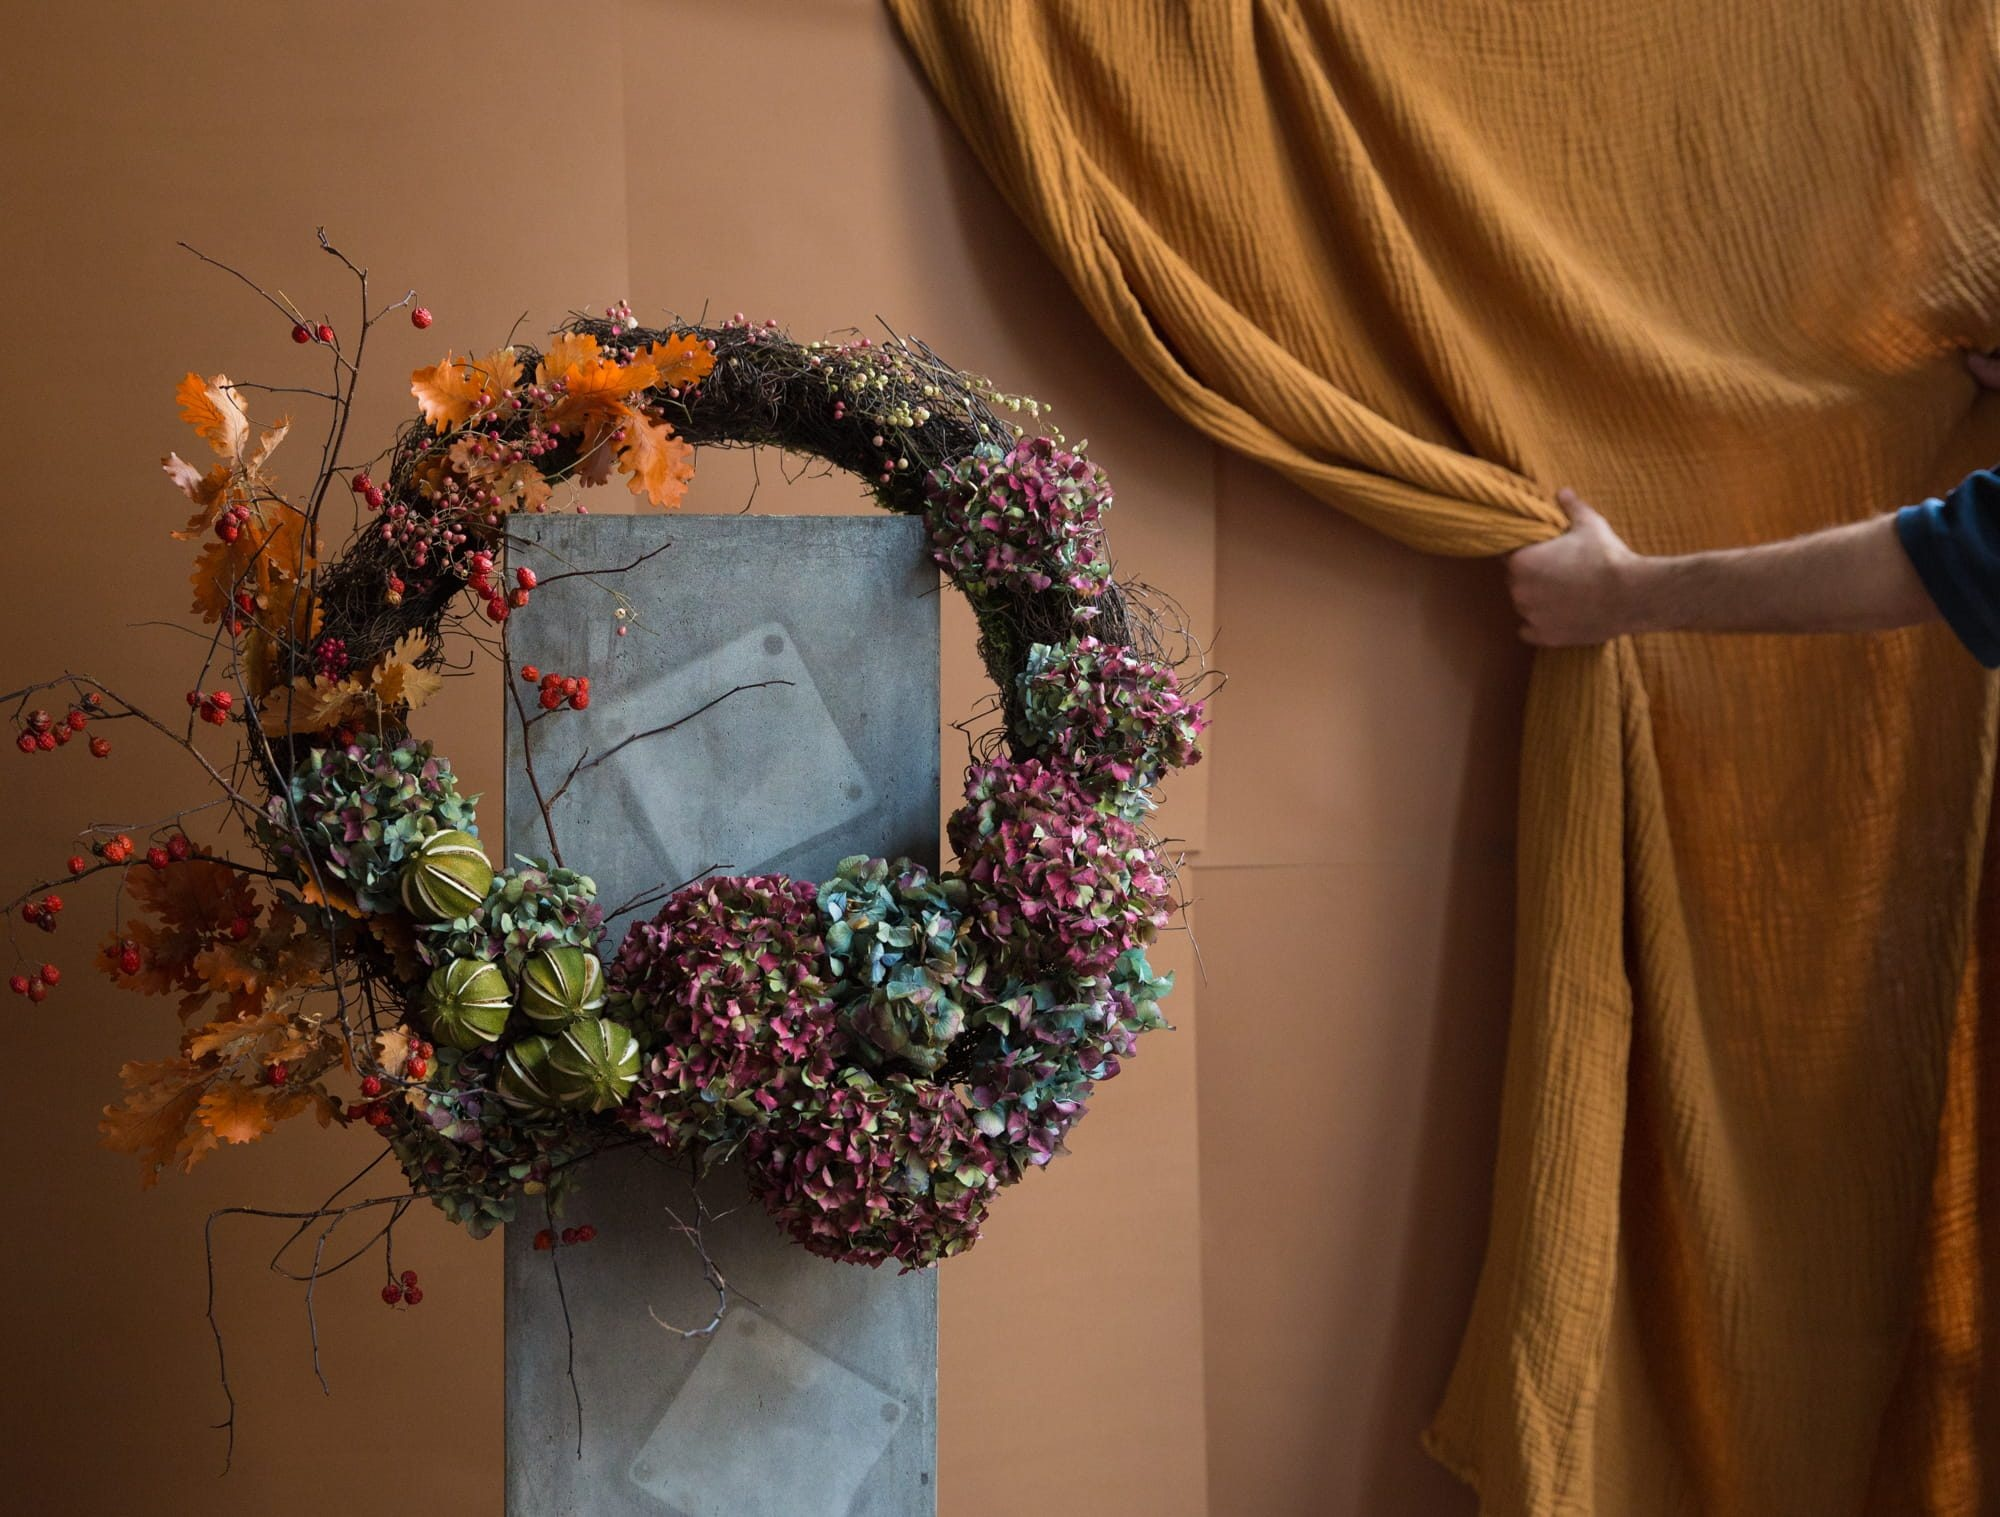 London_flower_school_floristry_classes_workshops_learn_christmas_workshop_wreath